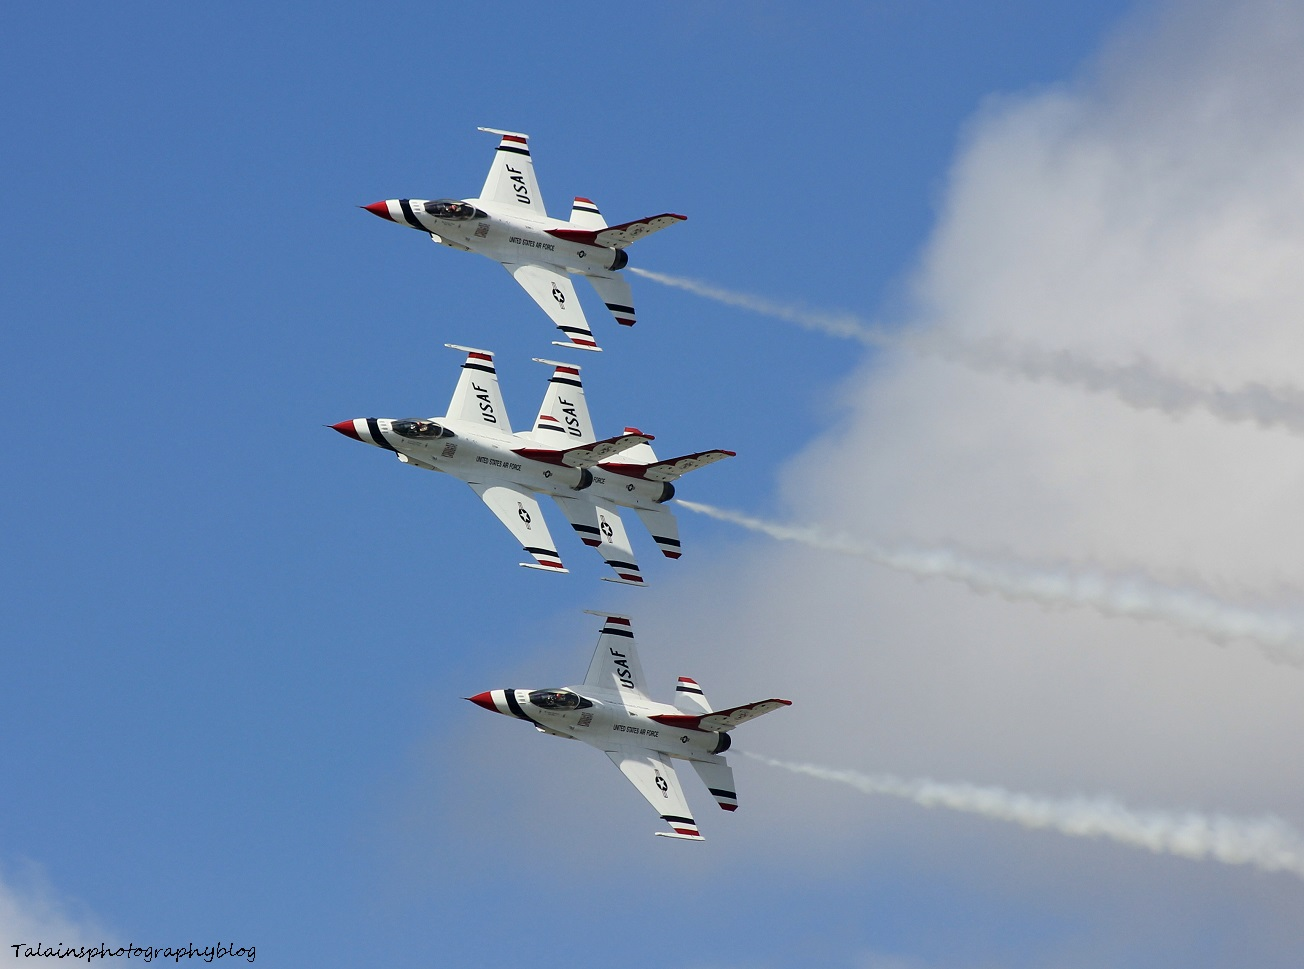 R.A.S. 214 Thunderbirds